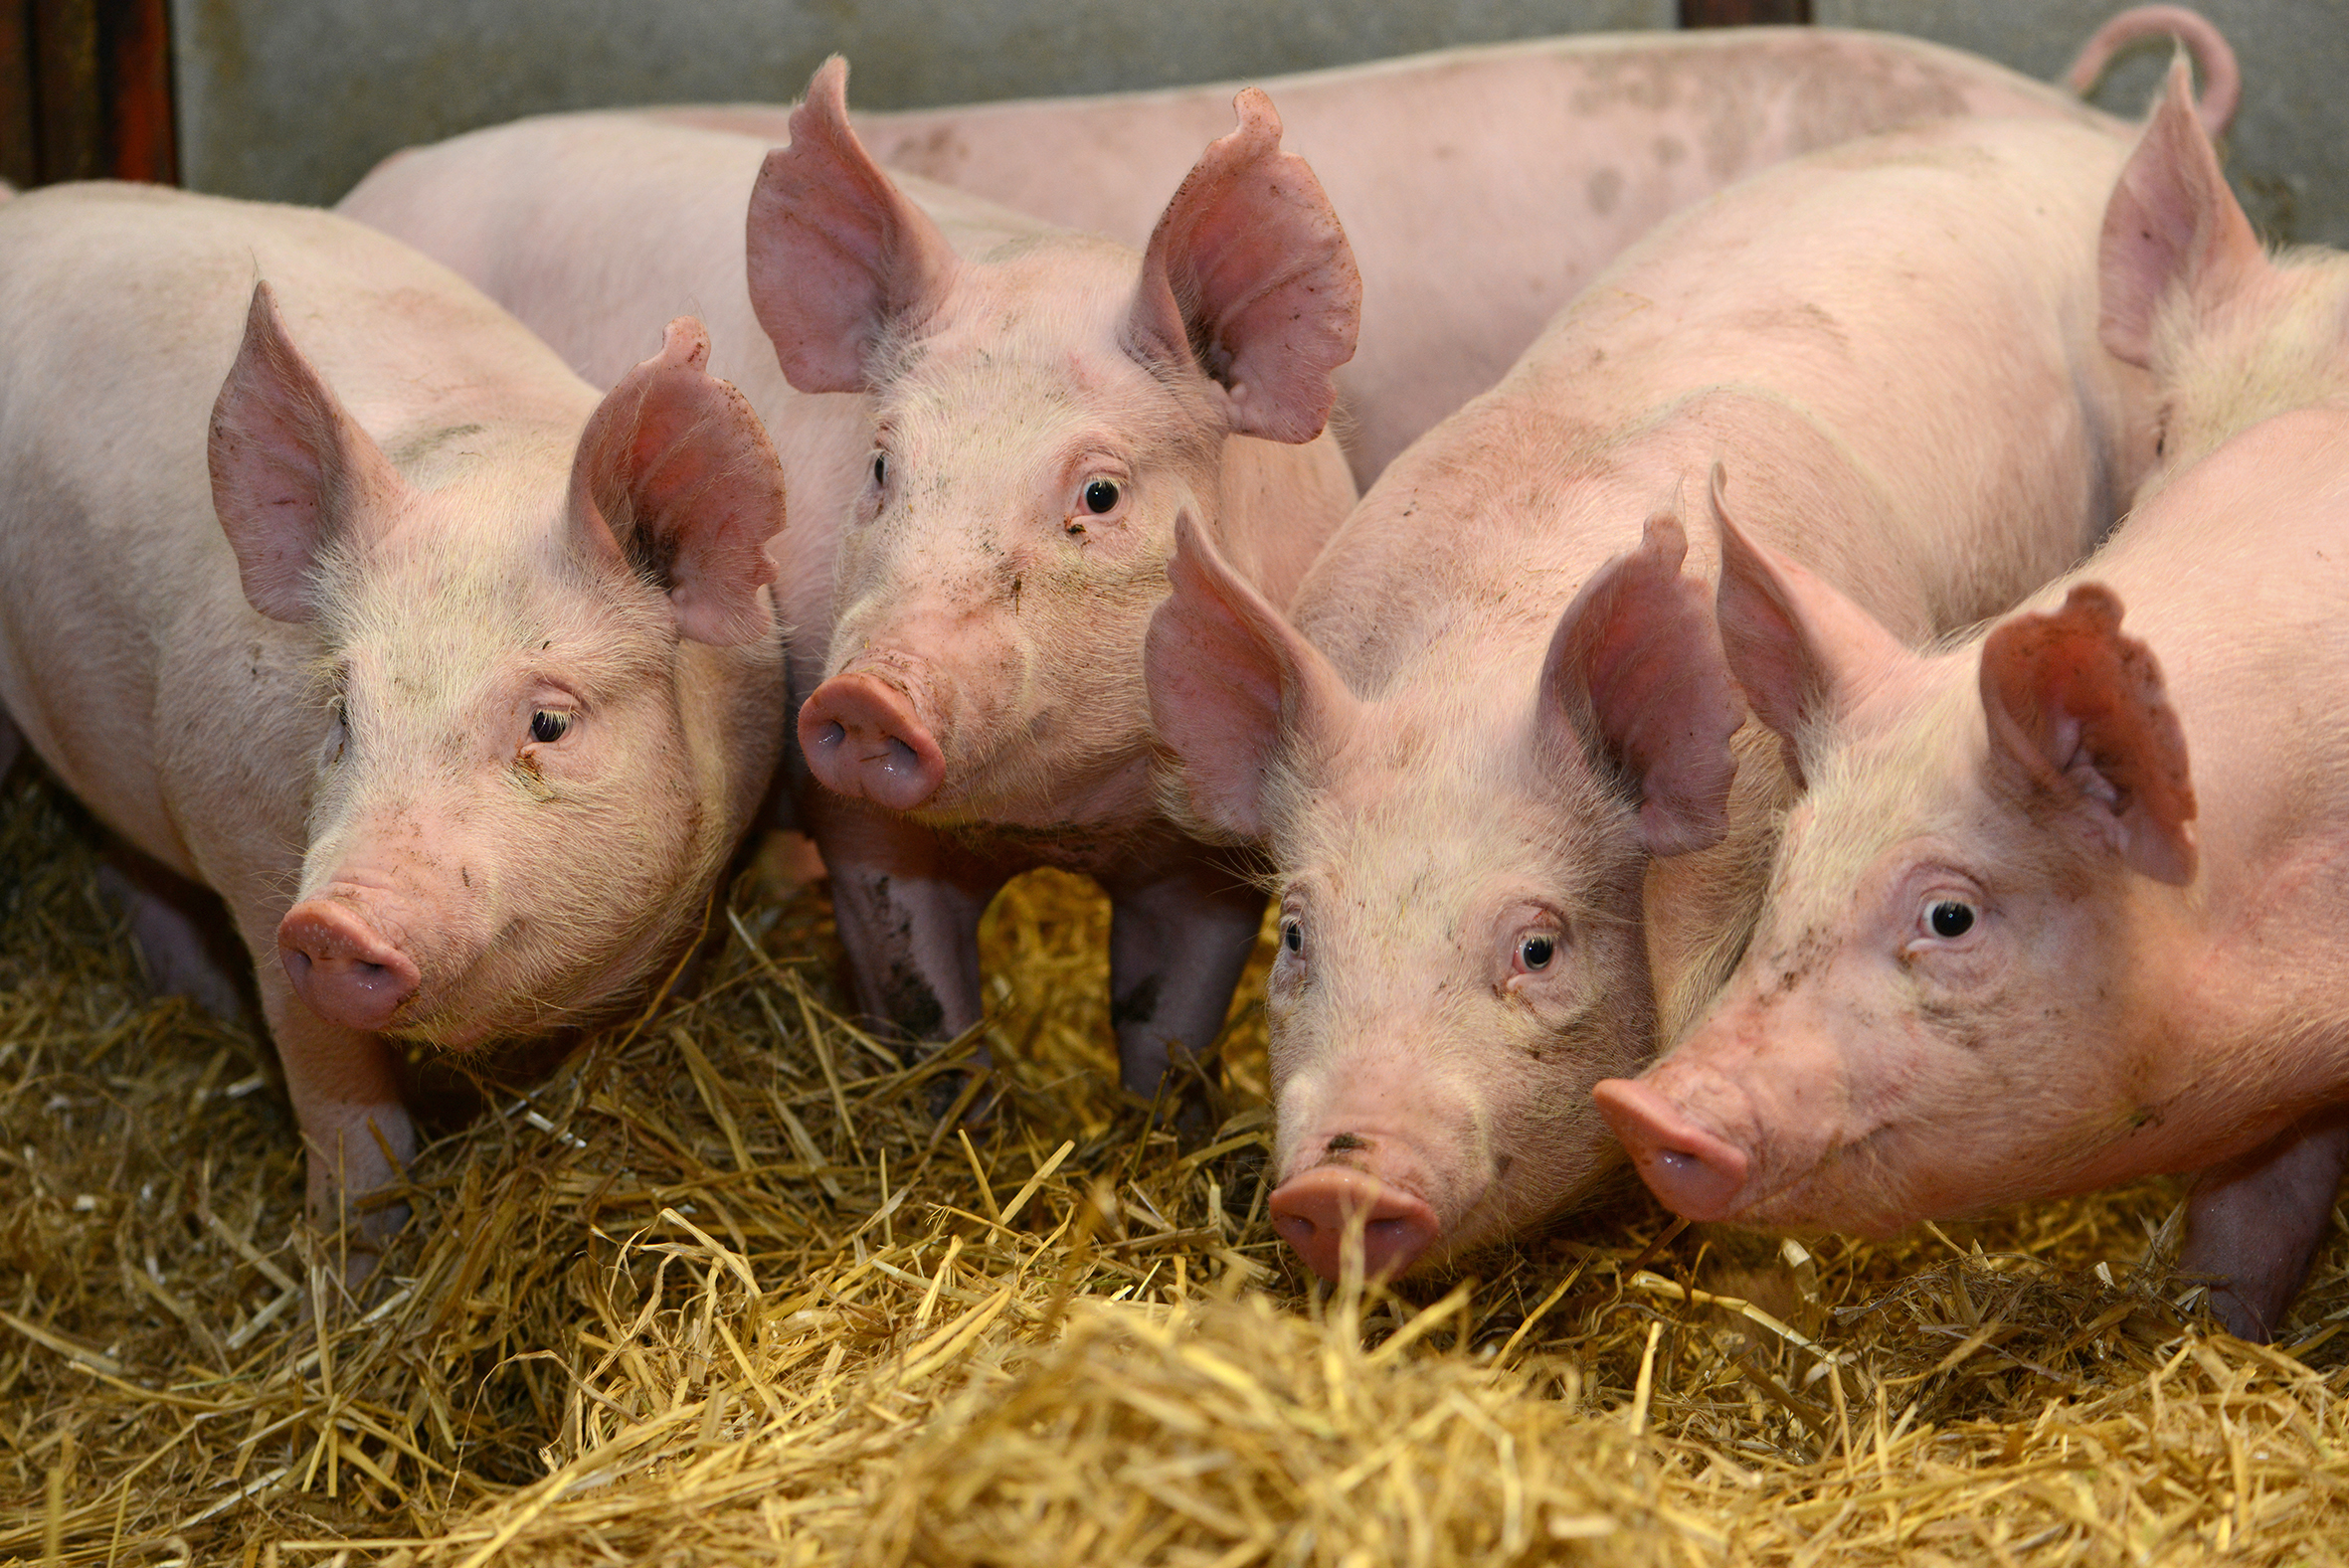 More than five million pigs have been entered onto a database introduced to record antibiotic usage